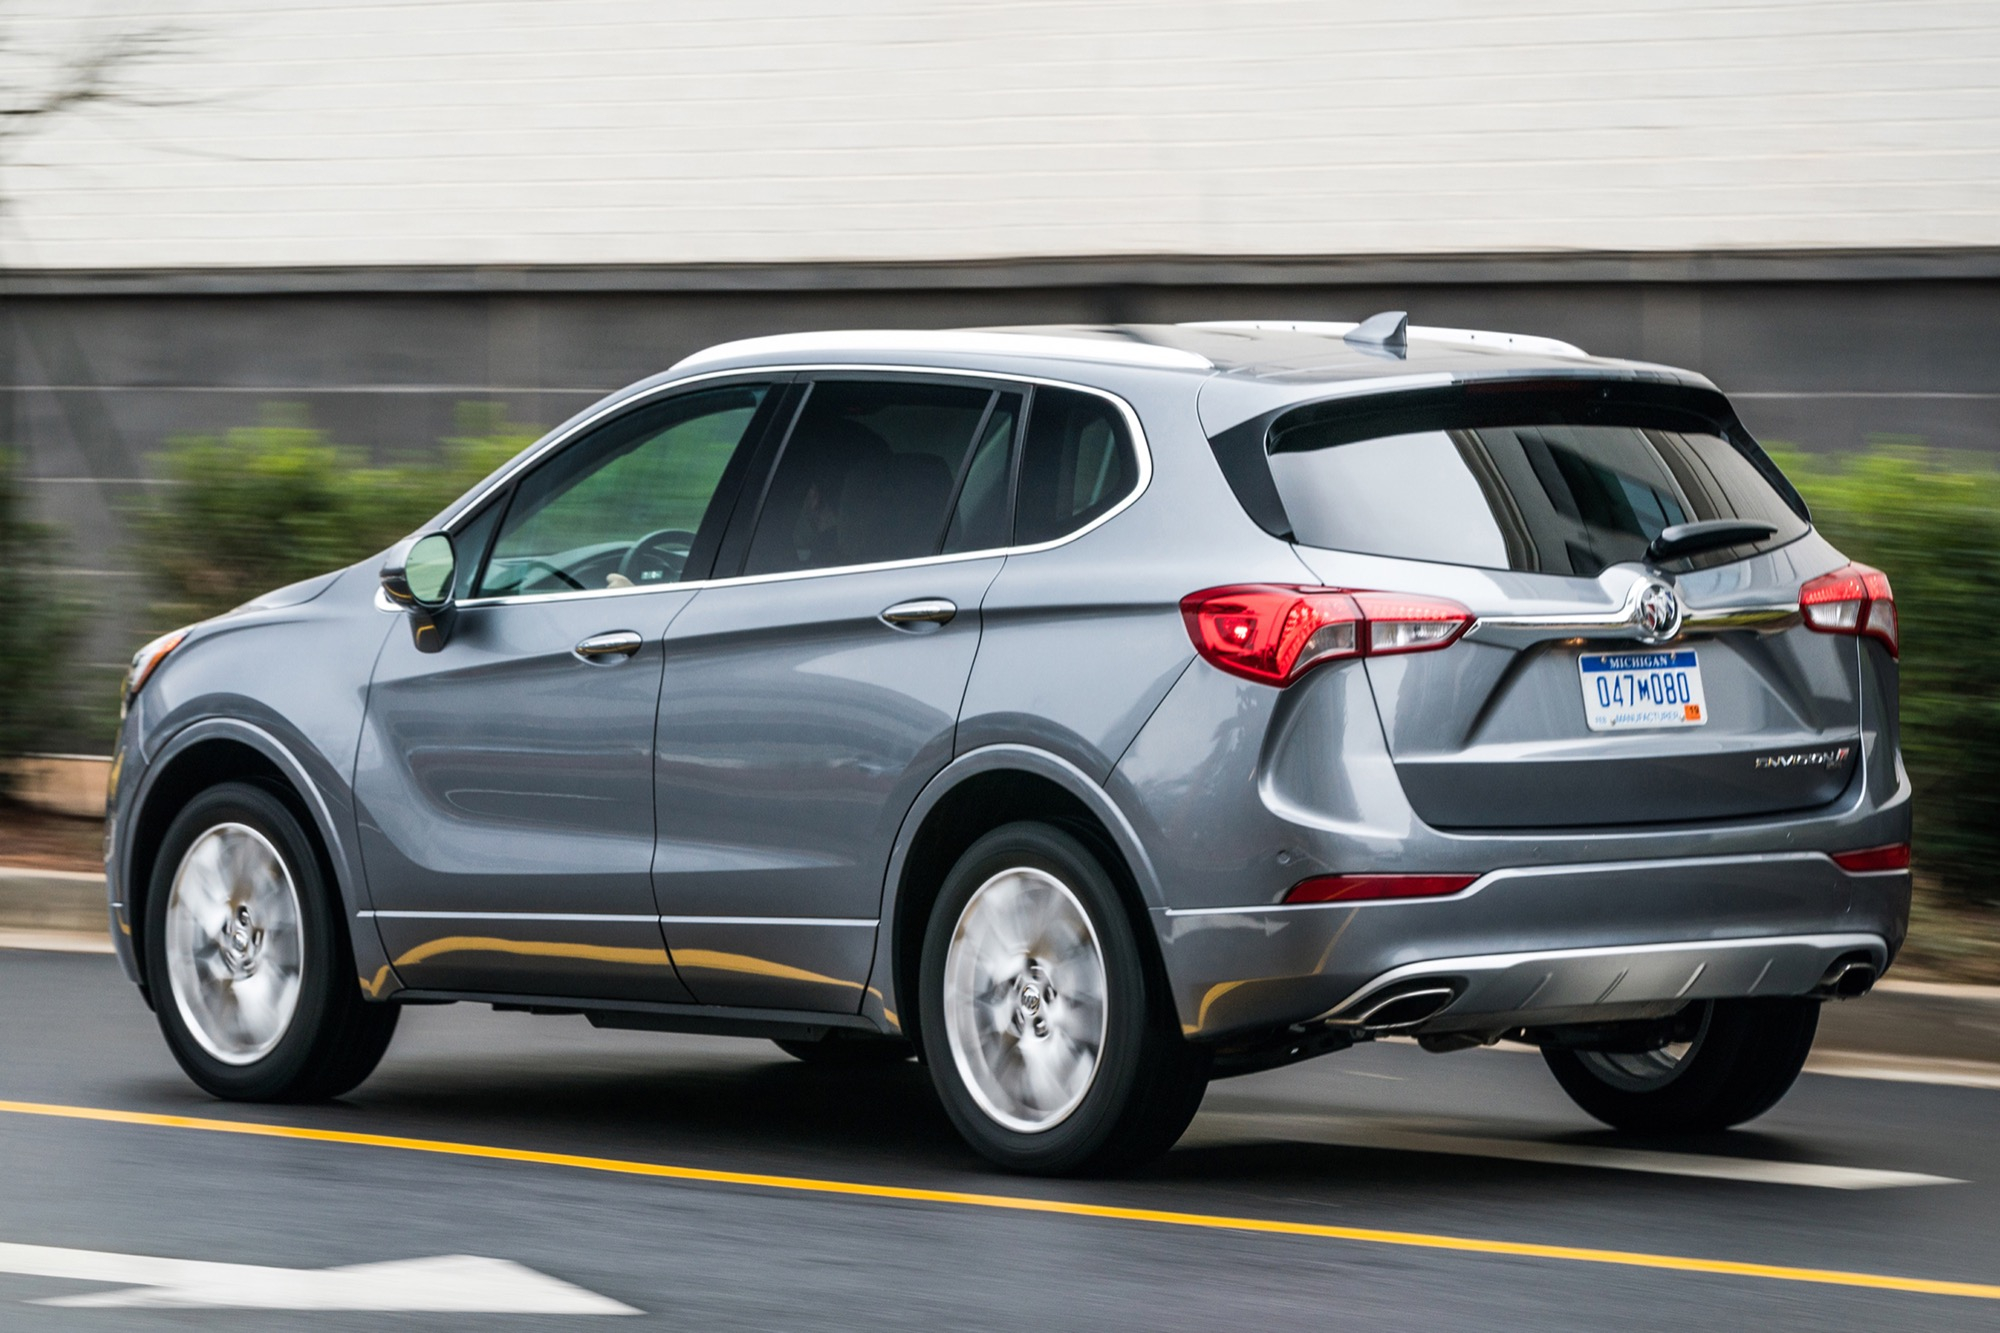 2019 Buick Envision Exterior Colors | Gm Authority 2022 Buick Envision Release Date, Preferred, Exterior Colors